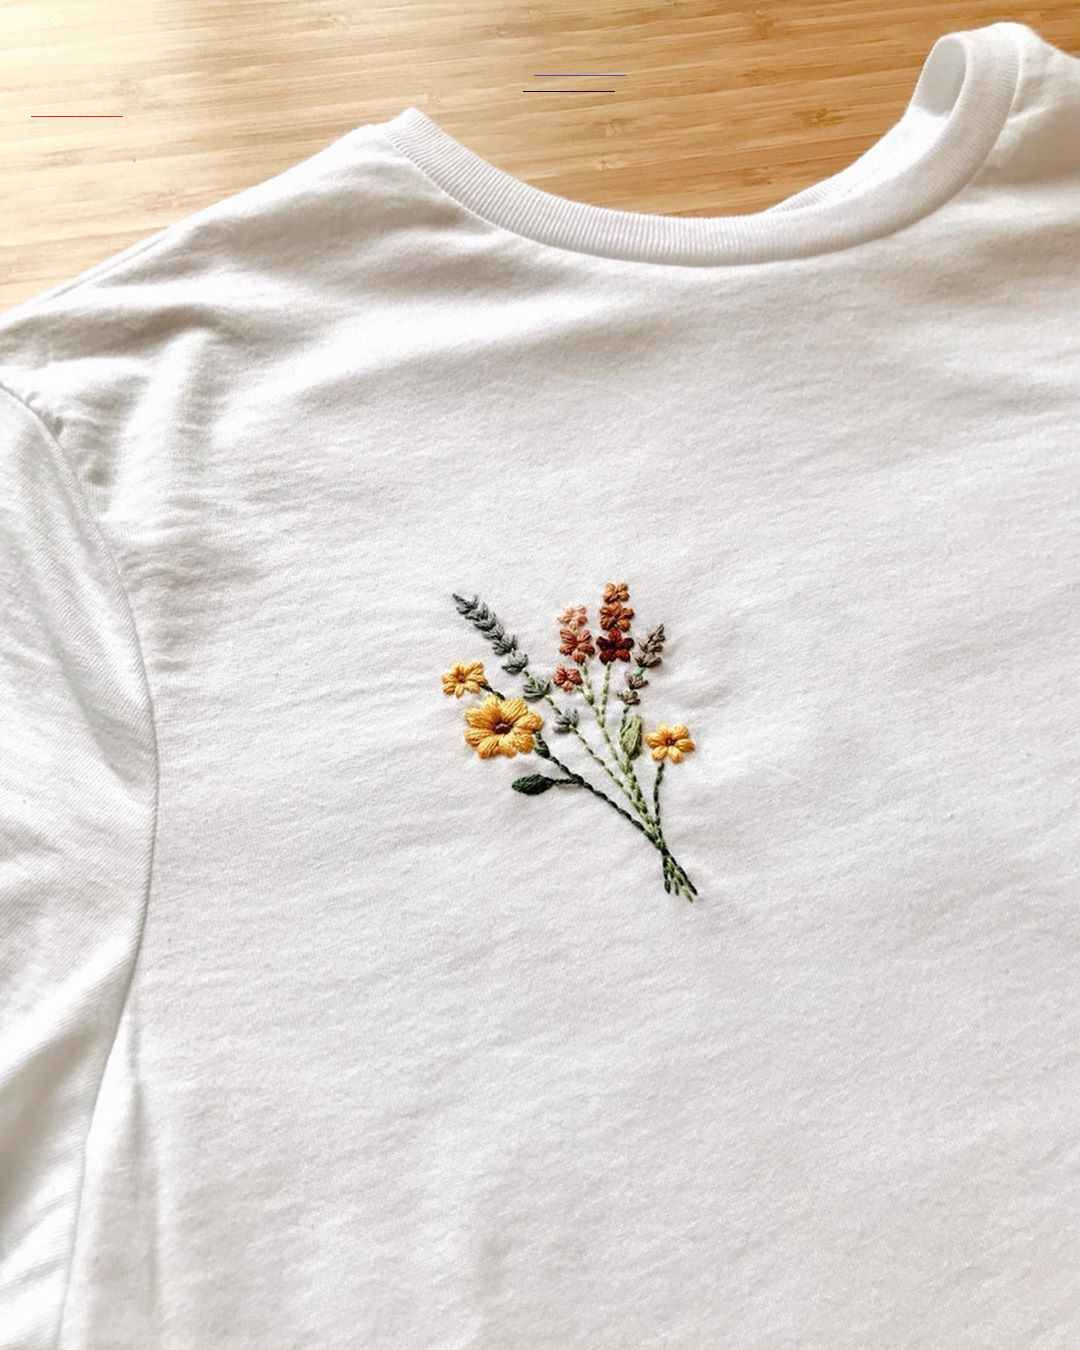 Shirt Design Inspiration Creative ; Shirt Design Inspiration – stichy